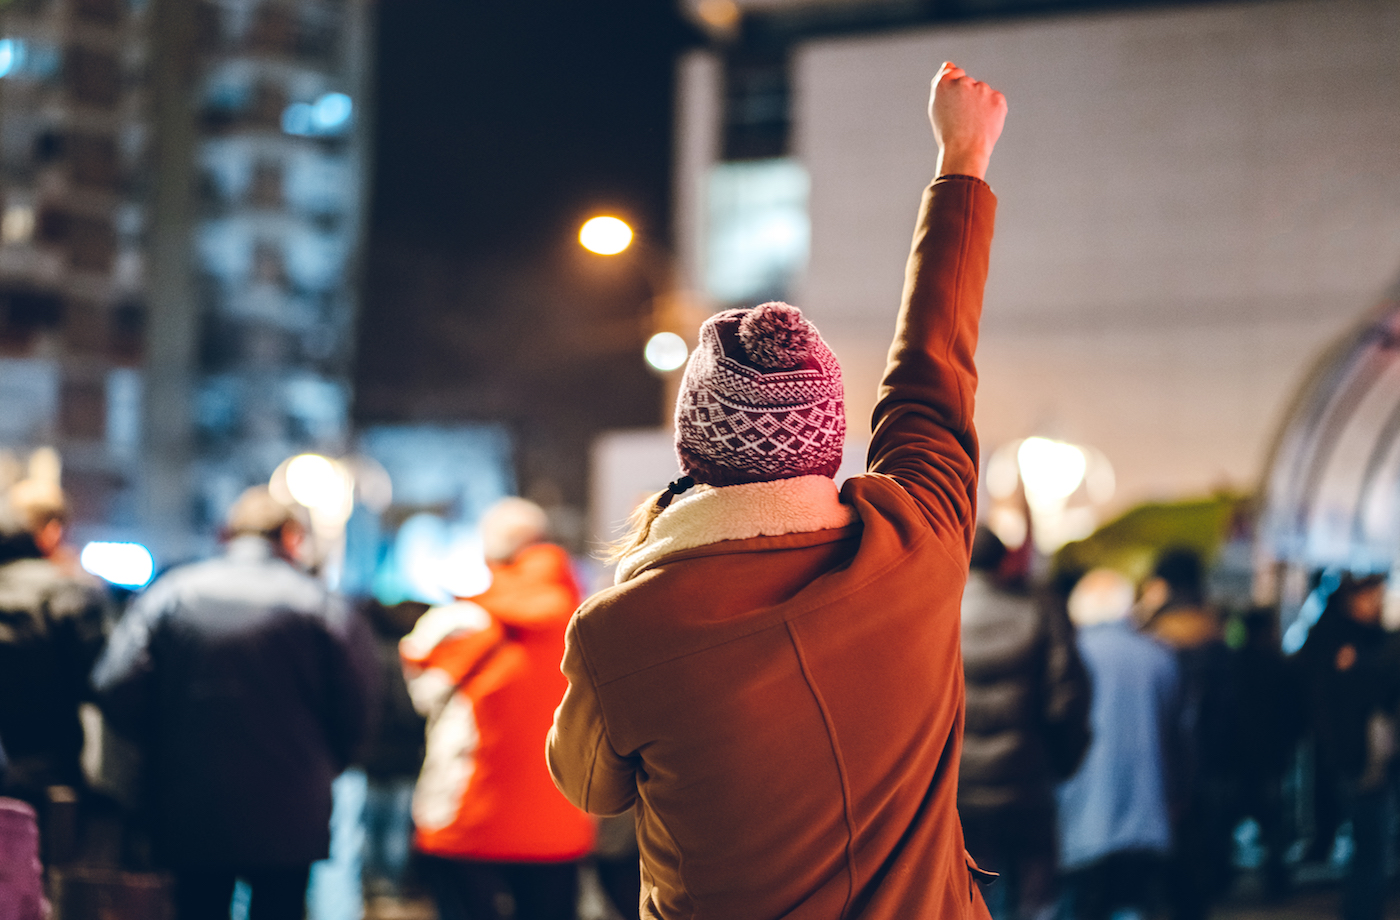 Thumbnail for 5 ways to participate in effective activism, according to two experts